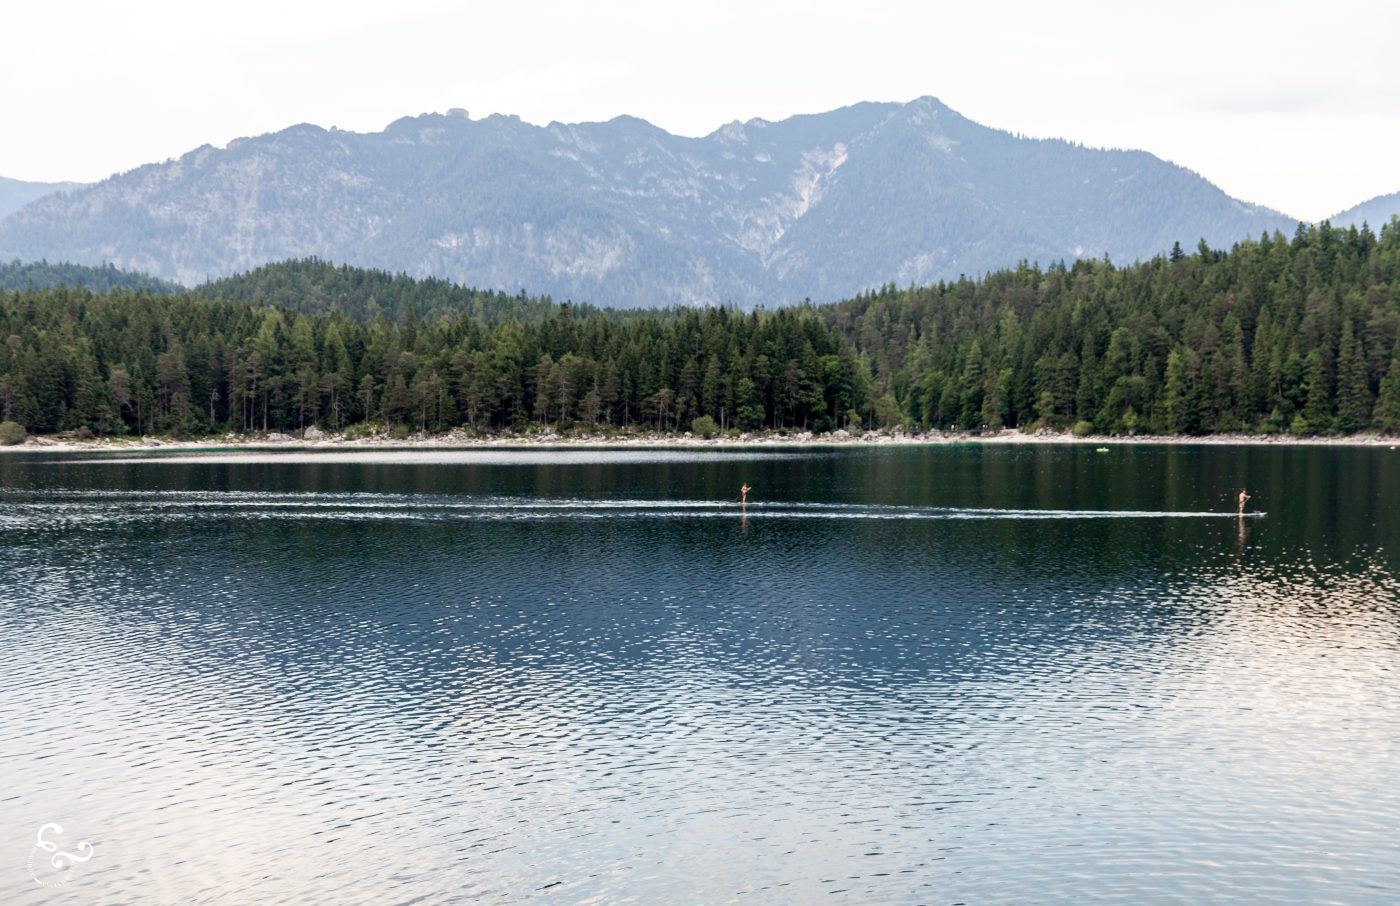 Lake Eibsee Garmisch Germany Deutschland Nowhere & Everywhere Travel Photography Lis Dingjan Free Range Pixels Photography Landscapes Germany Instagram